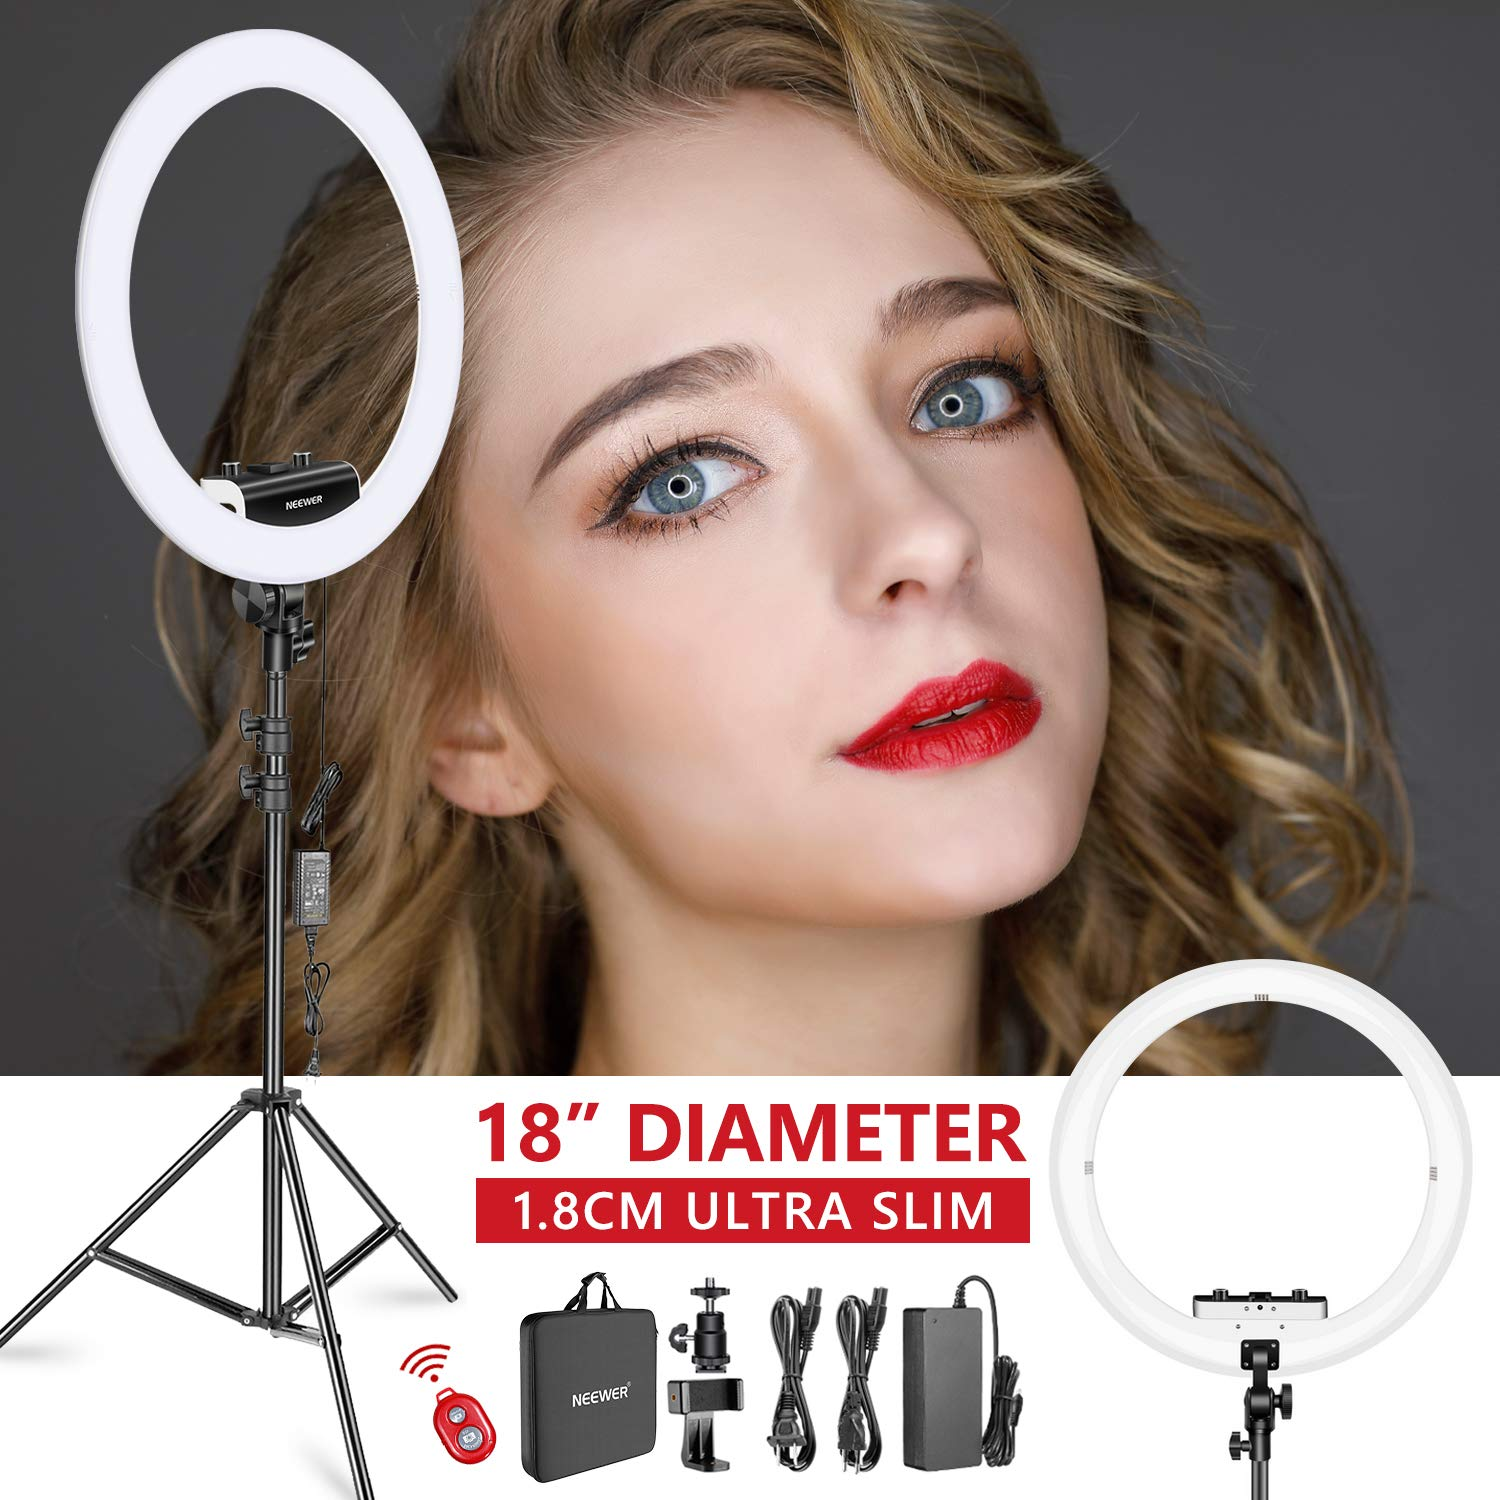 Neewer Ring Light Kit [Upgraded Version-1.8cm Ultra Slim] - 18 inches, 3200-5600K, Dimmable LED Ring Light with Light Stand, Rotatable Phone Holder, Hot Shoe Adapter for Portrait Makeup Video Shooting by Neewer (Image #1)